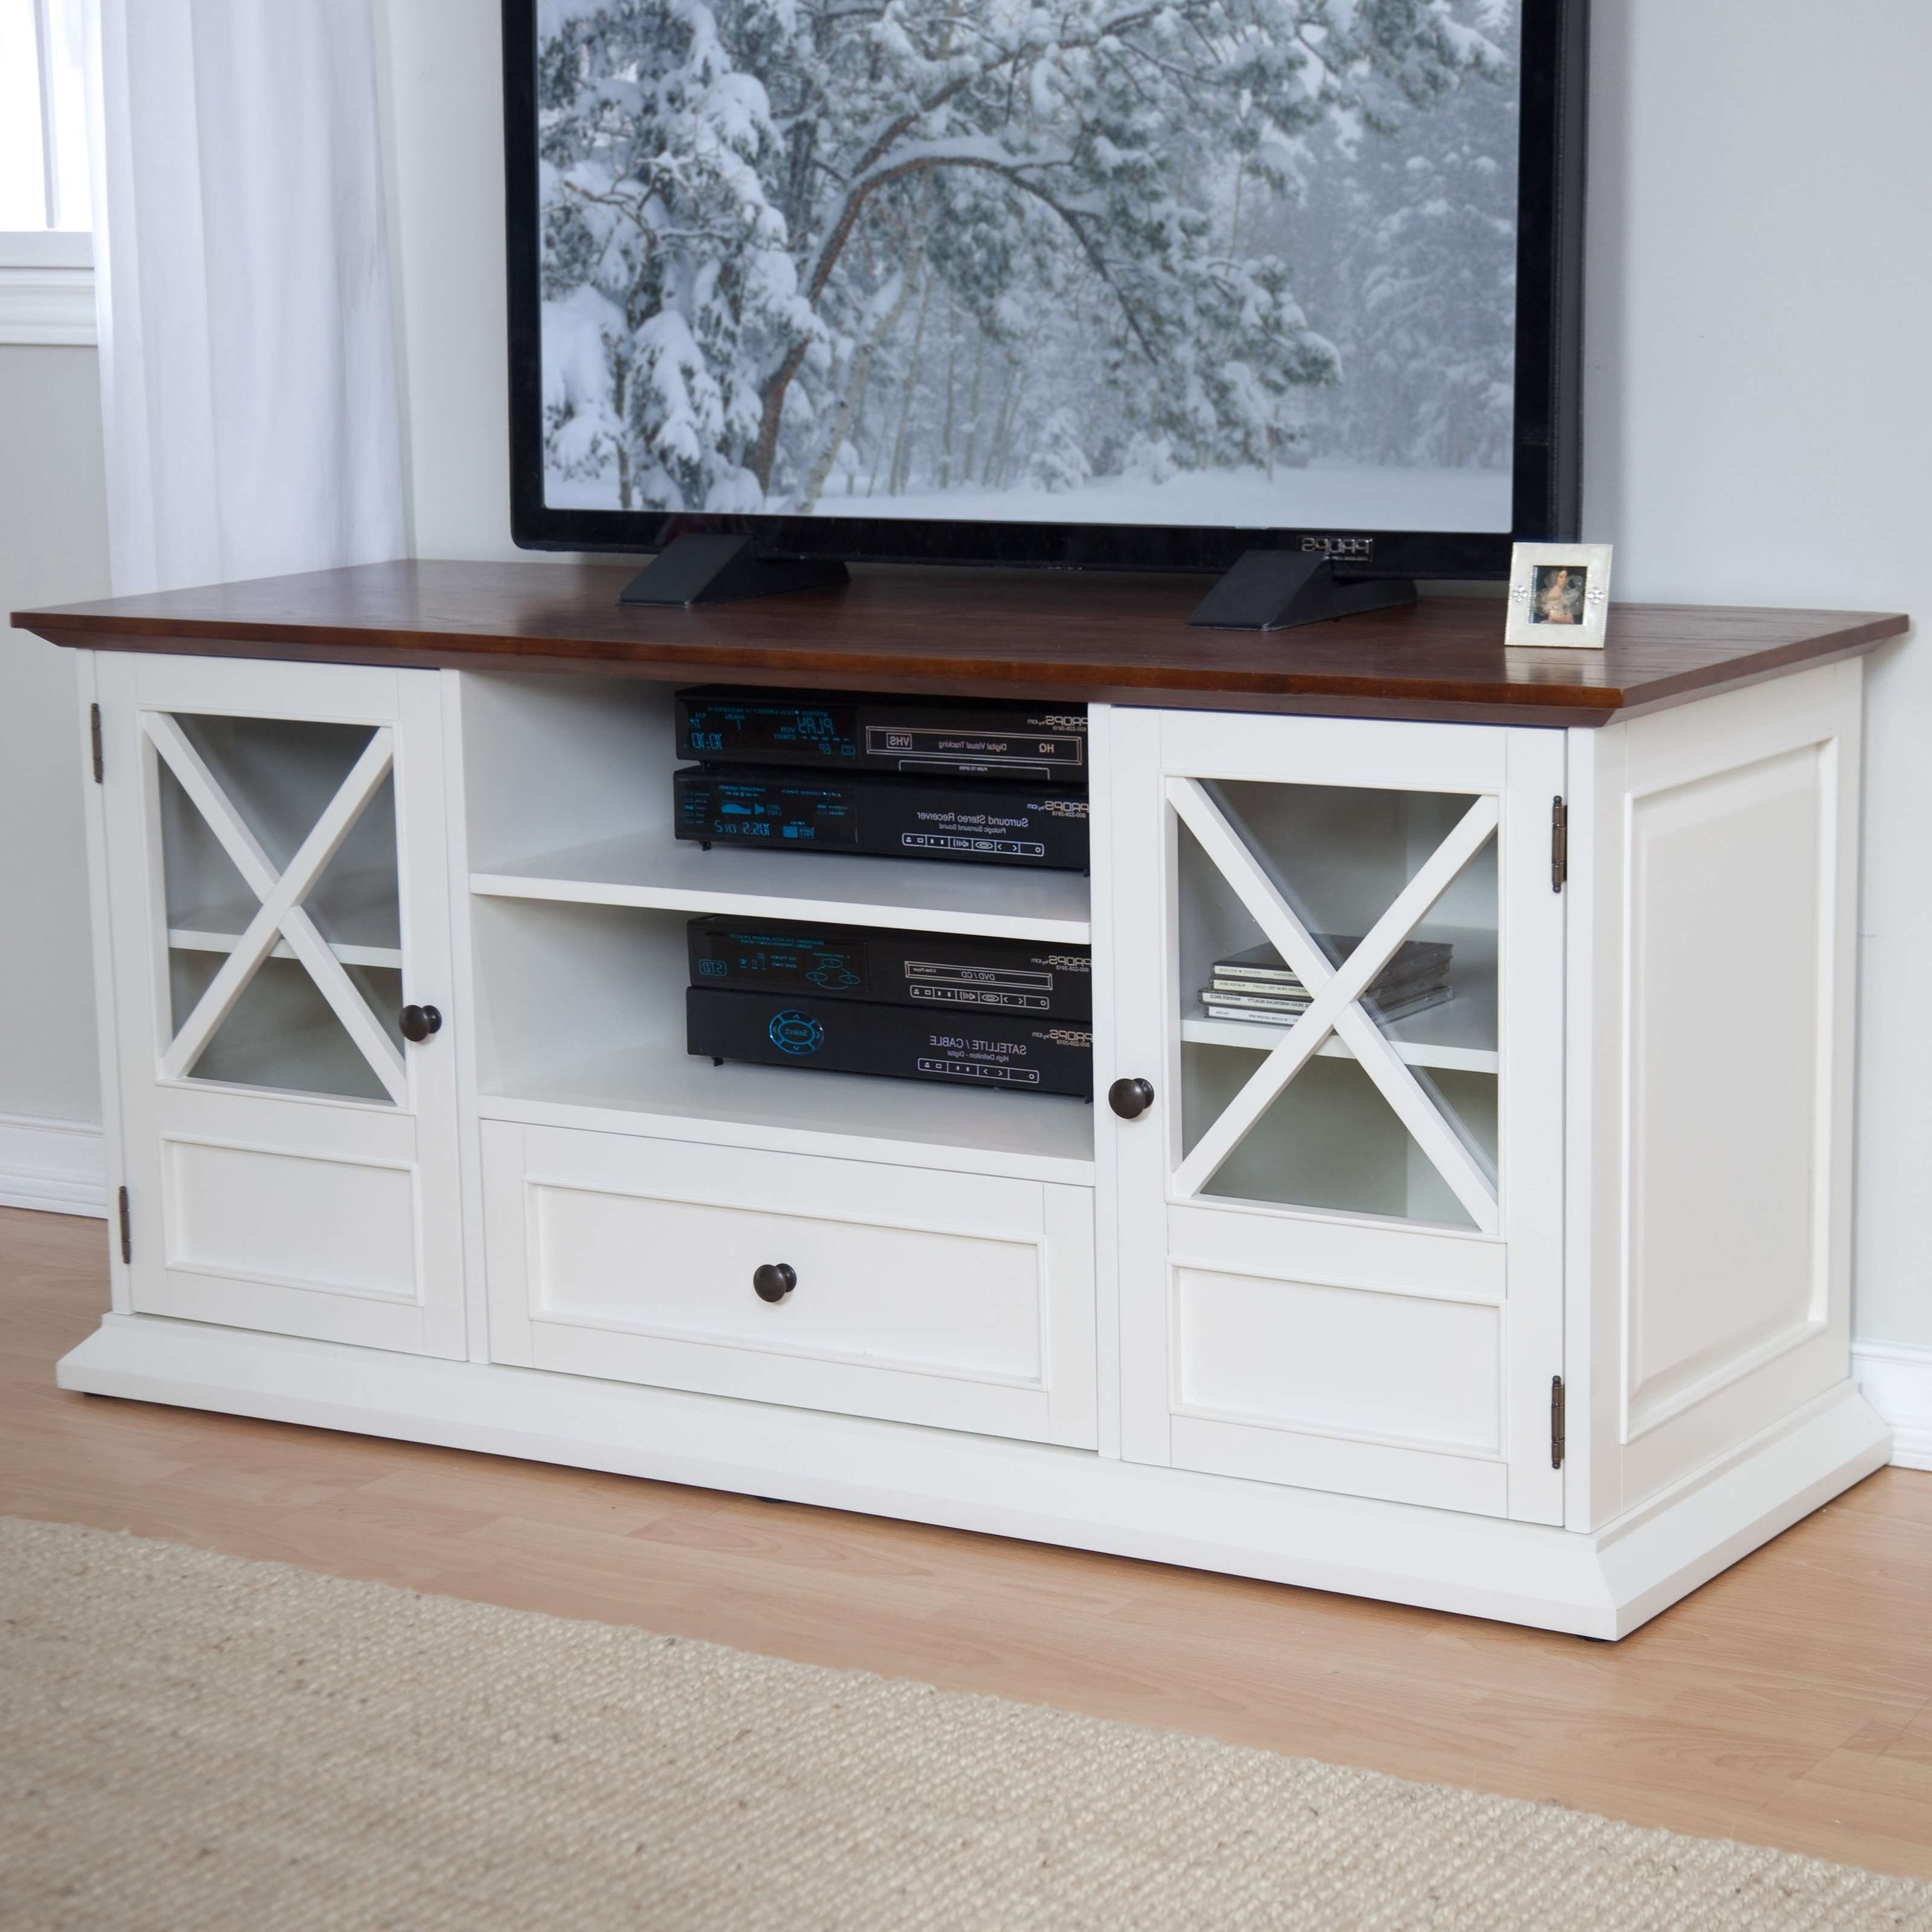 Tv : Exquisite 65 Inch Tv Stands With Integrated Mount Interesting For 65 Inch Tv Stands With Integrated Mount (View 4 of 15)